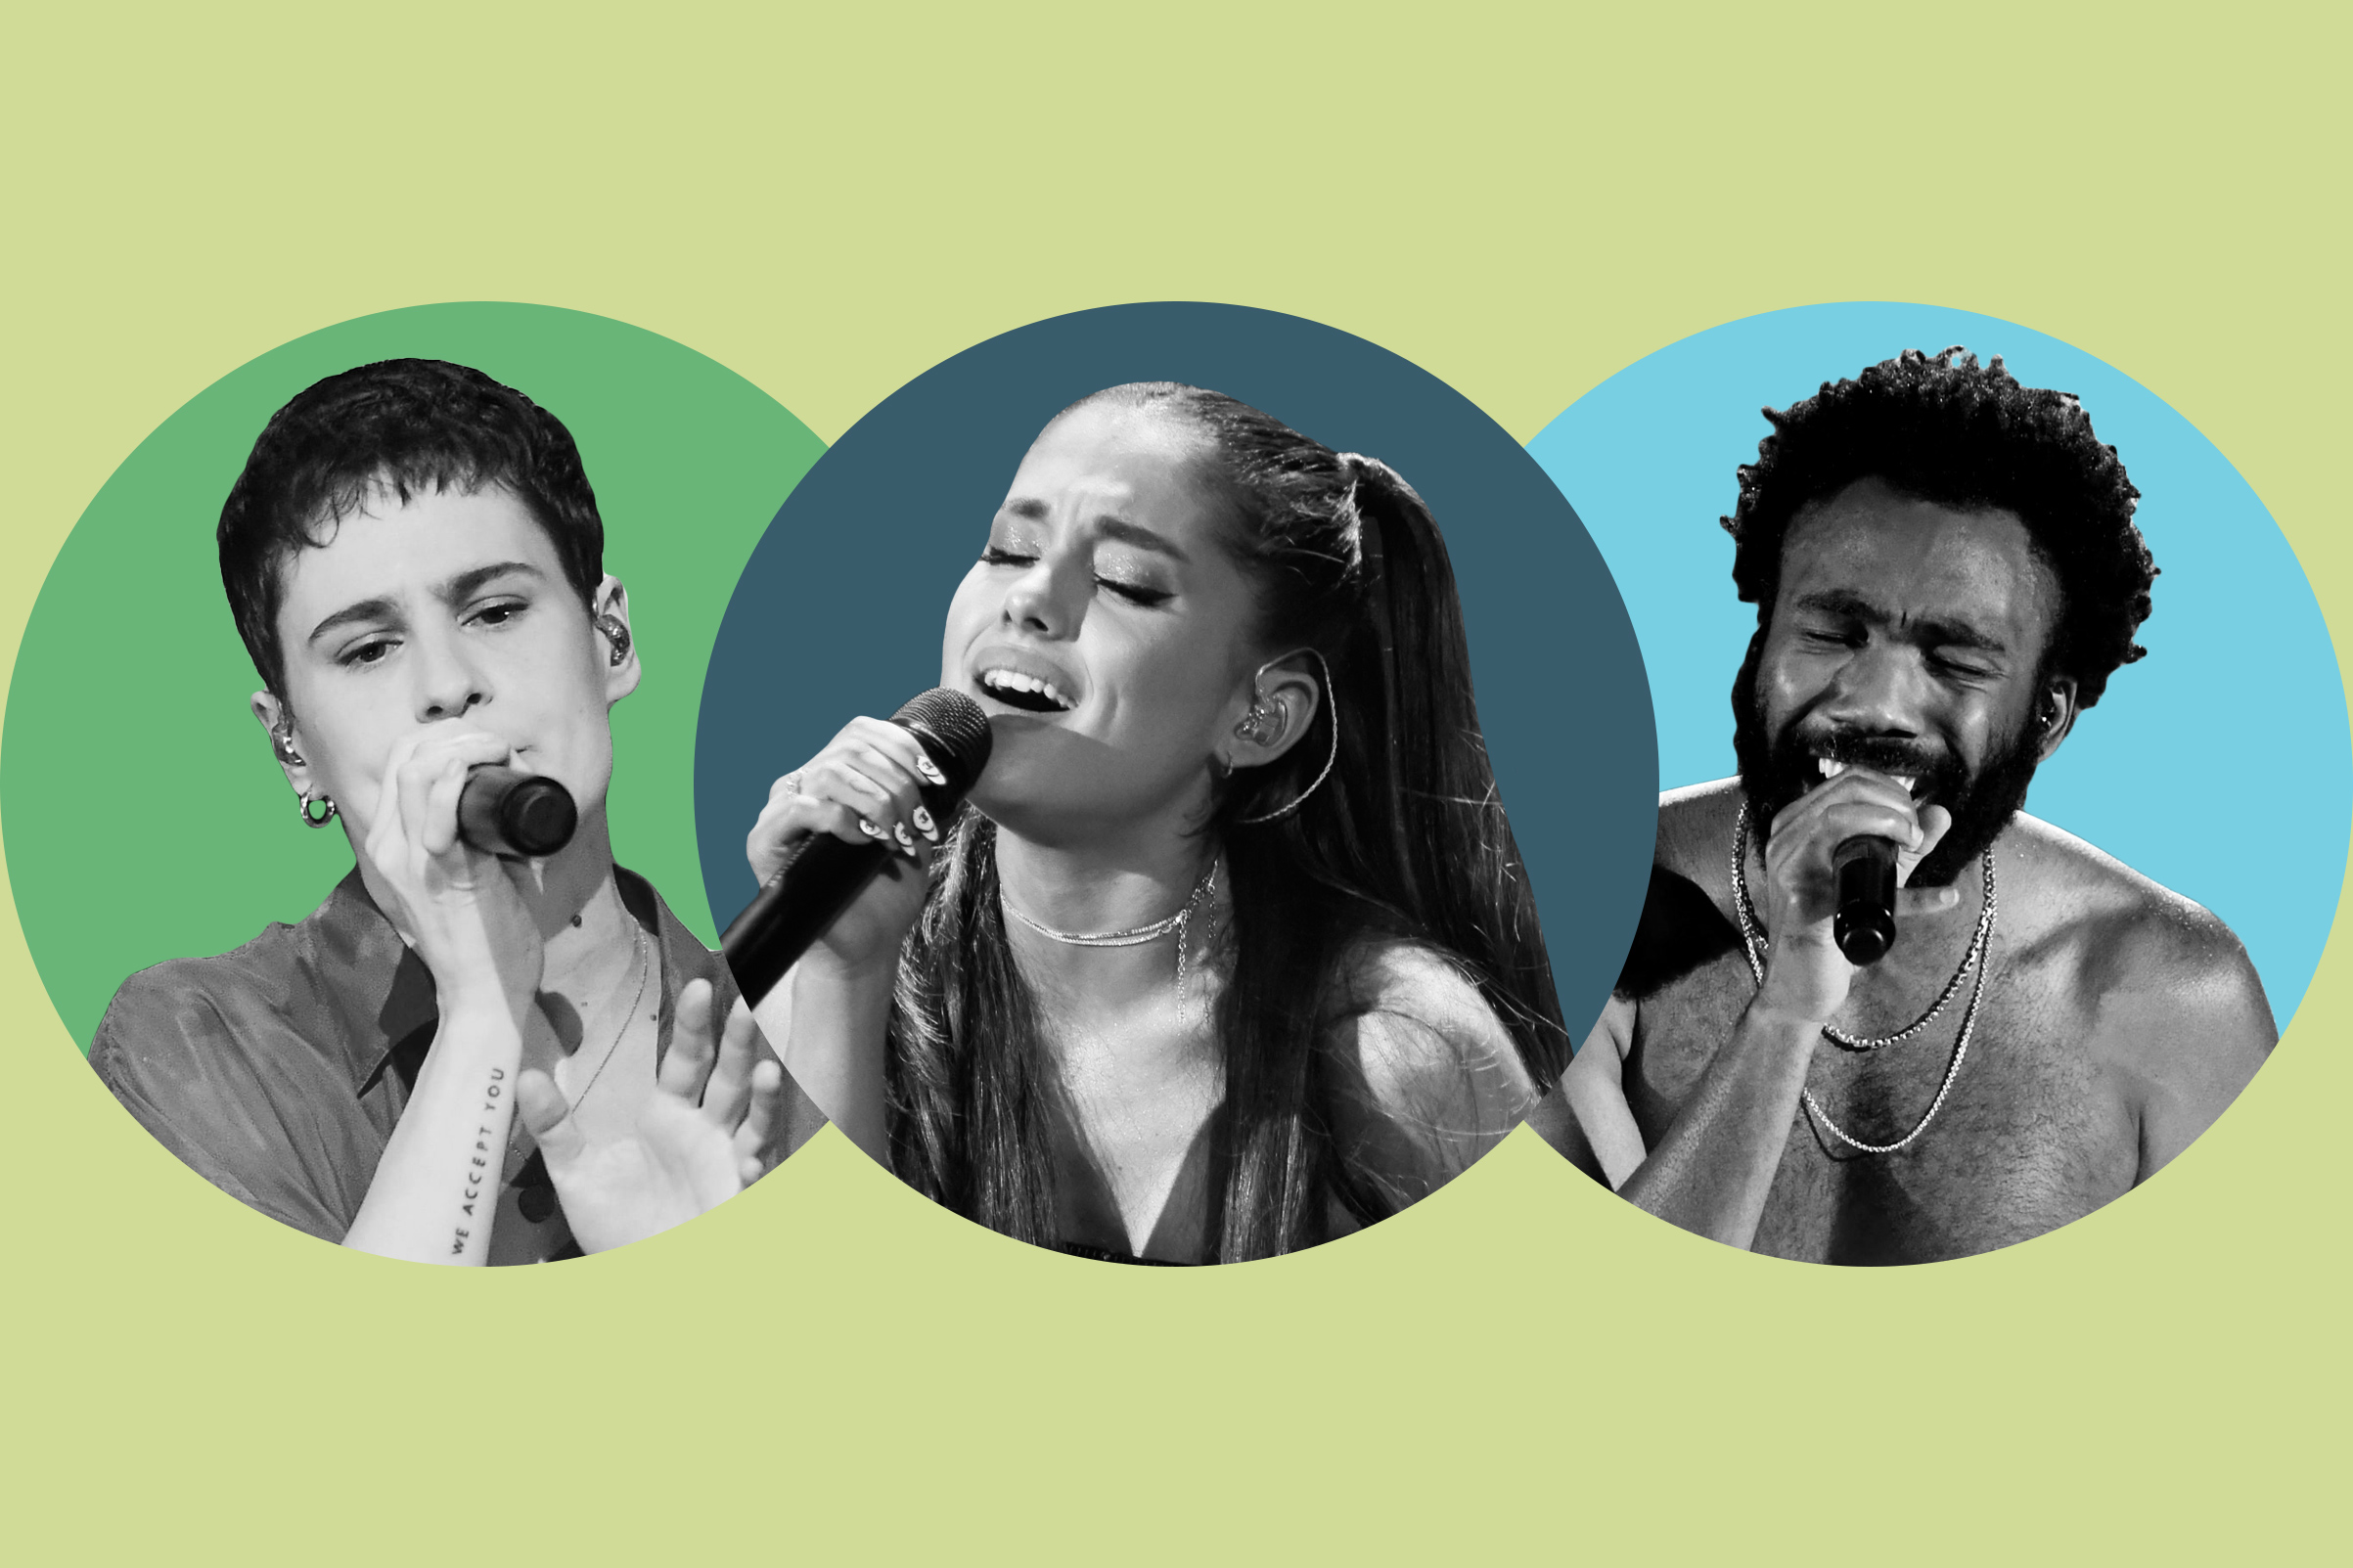 Christine and the Queens; Ariana Grande; Childish Gambino